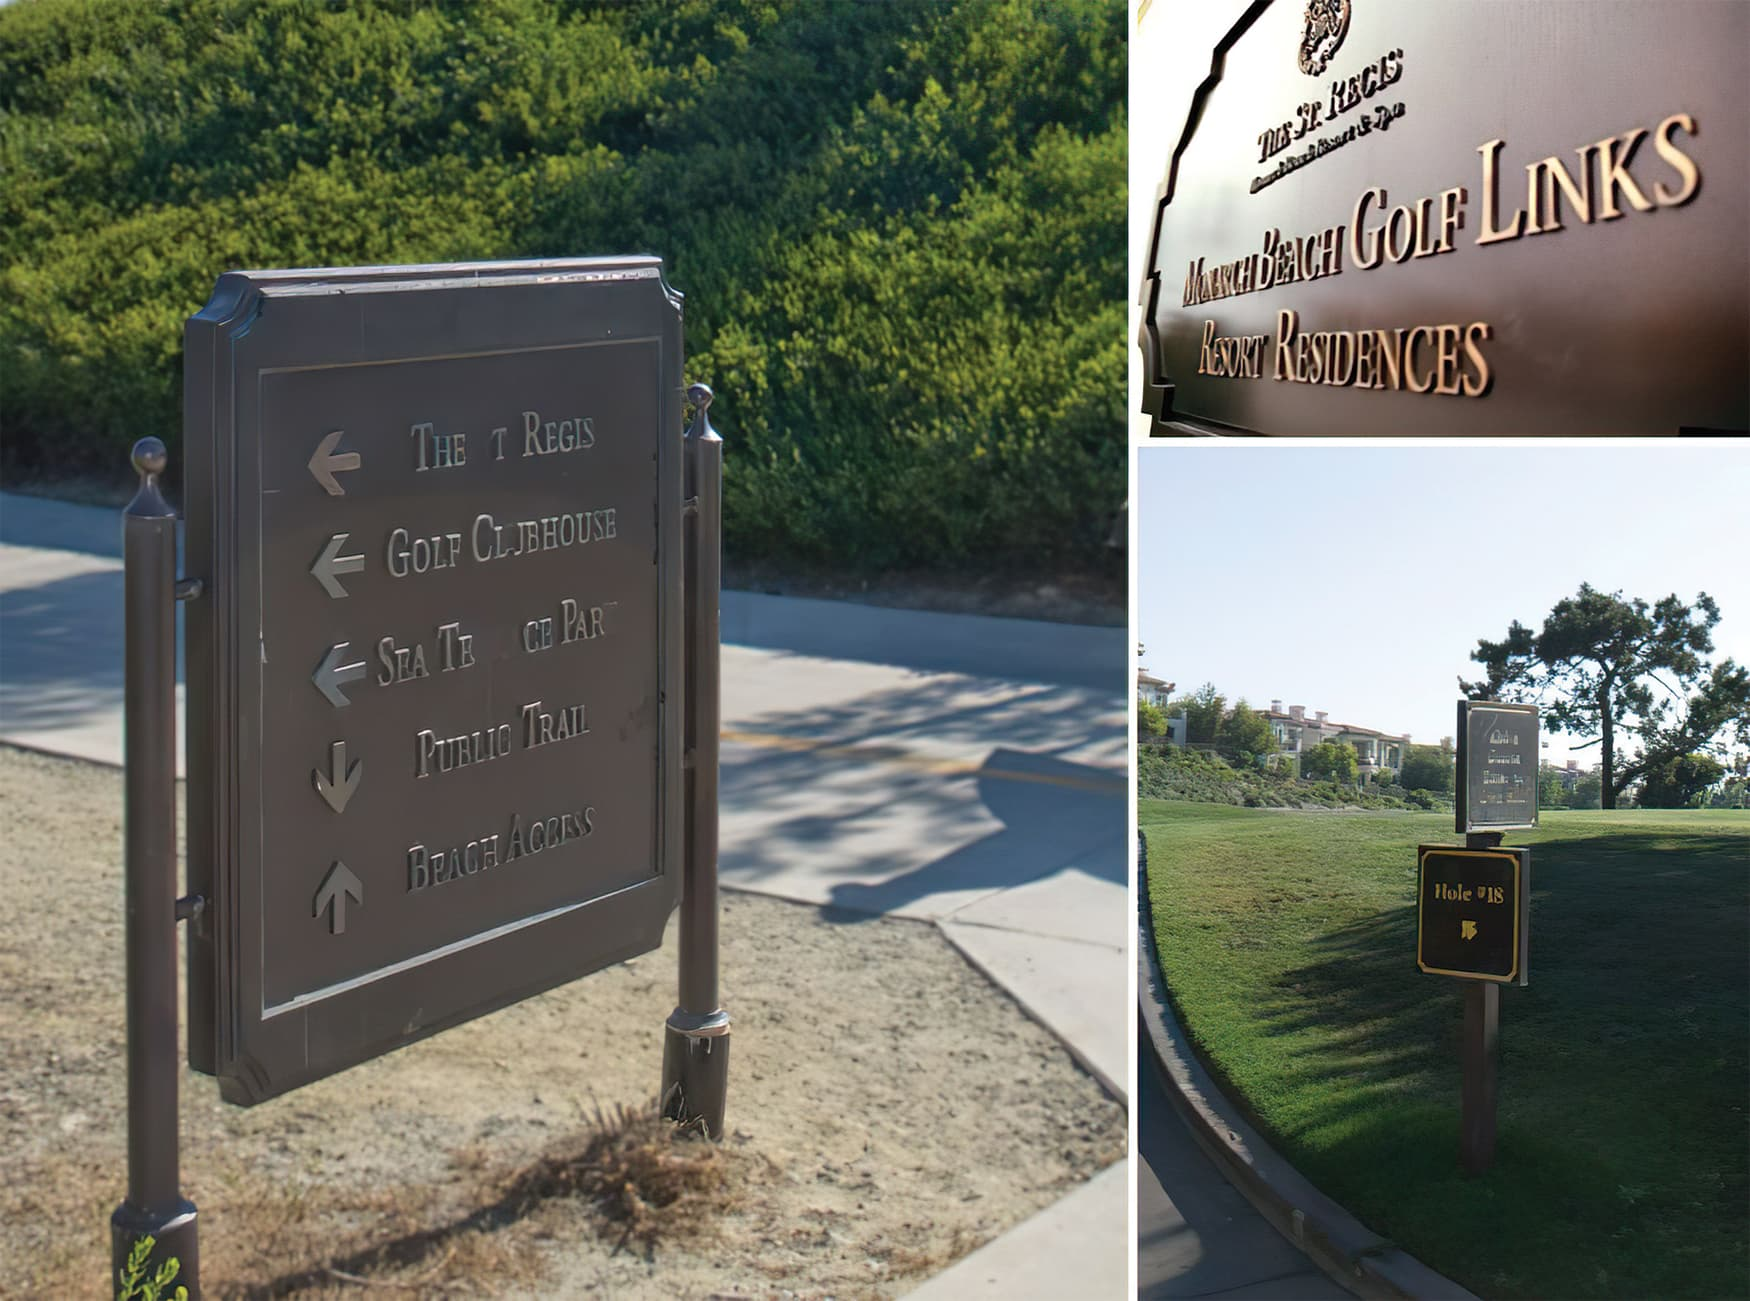 Monarch Beach Masterplan. City of Dana Point, California. Civic Design, Residential Community Signage, Park Wayfinding & Signage.